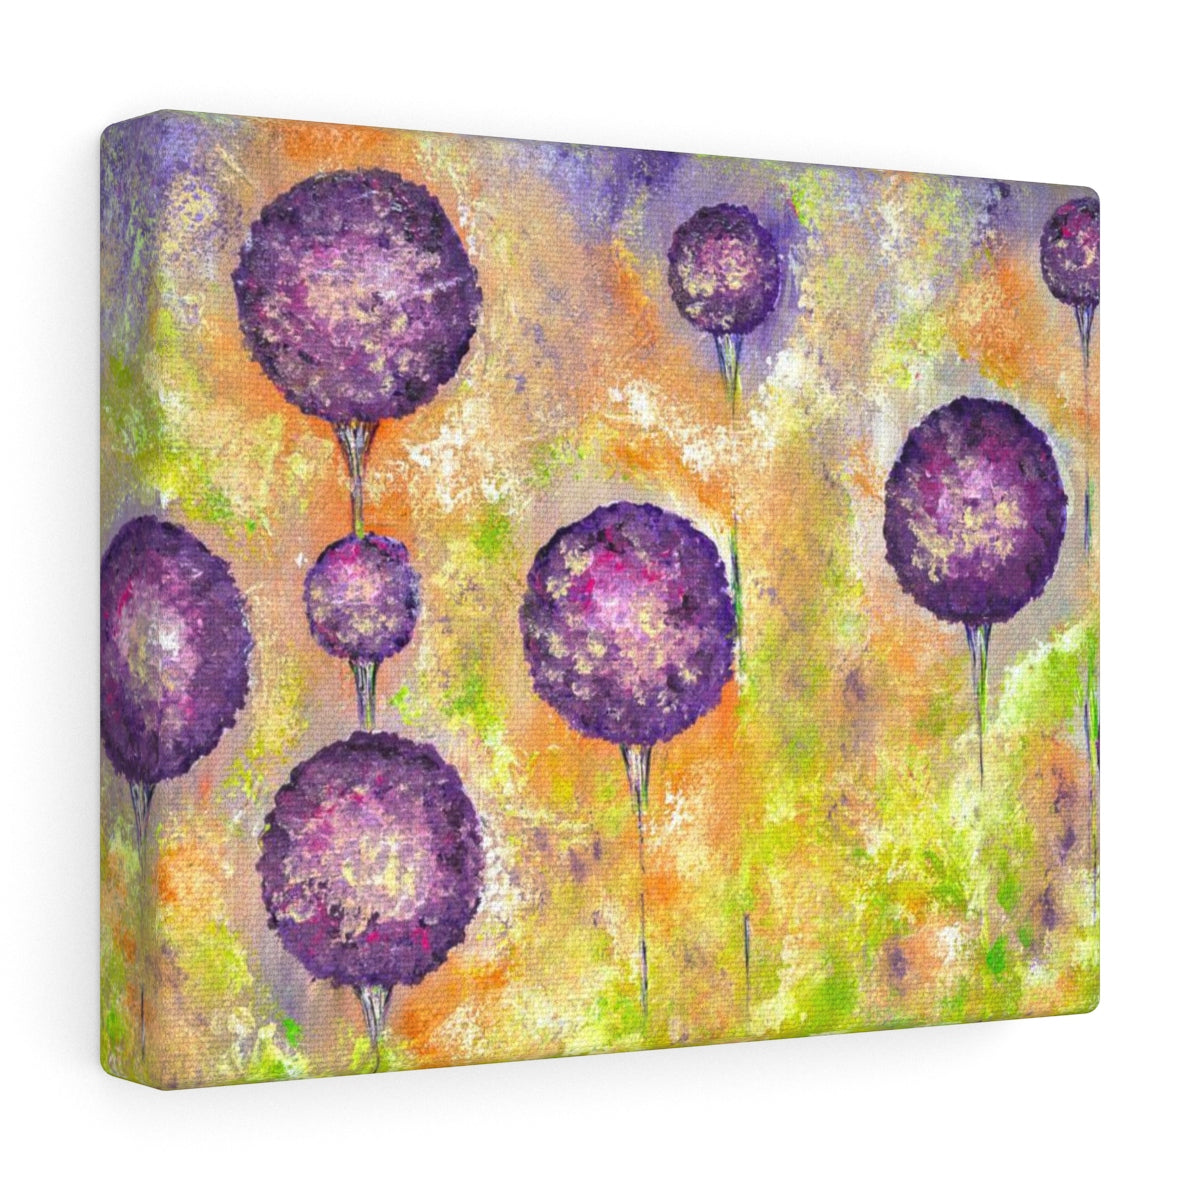 Flower Painting on Canvas Print - Floral Canvas | Brandless Artist